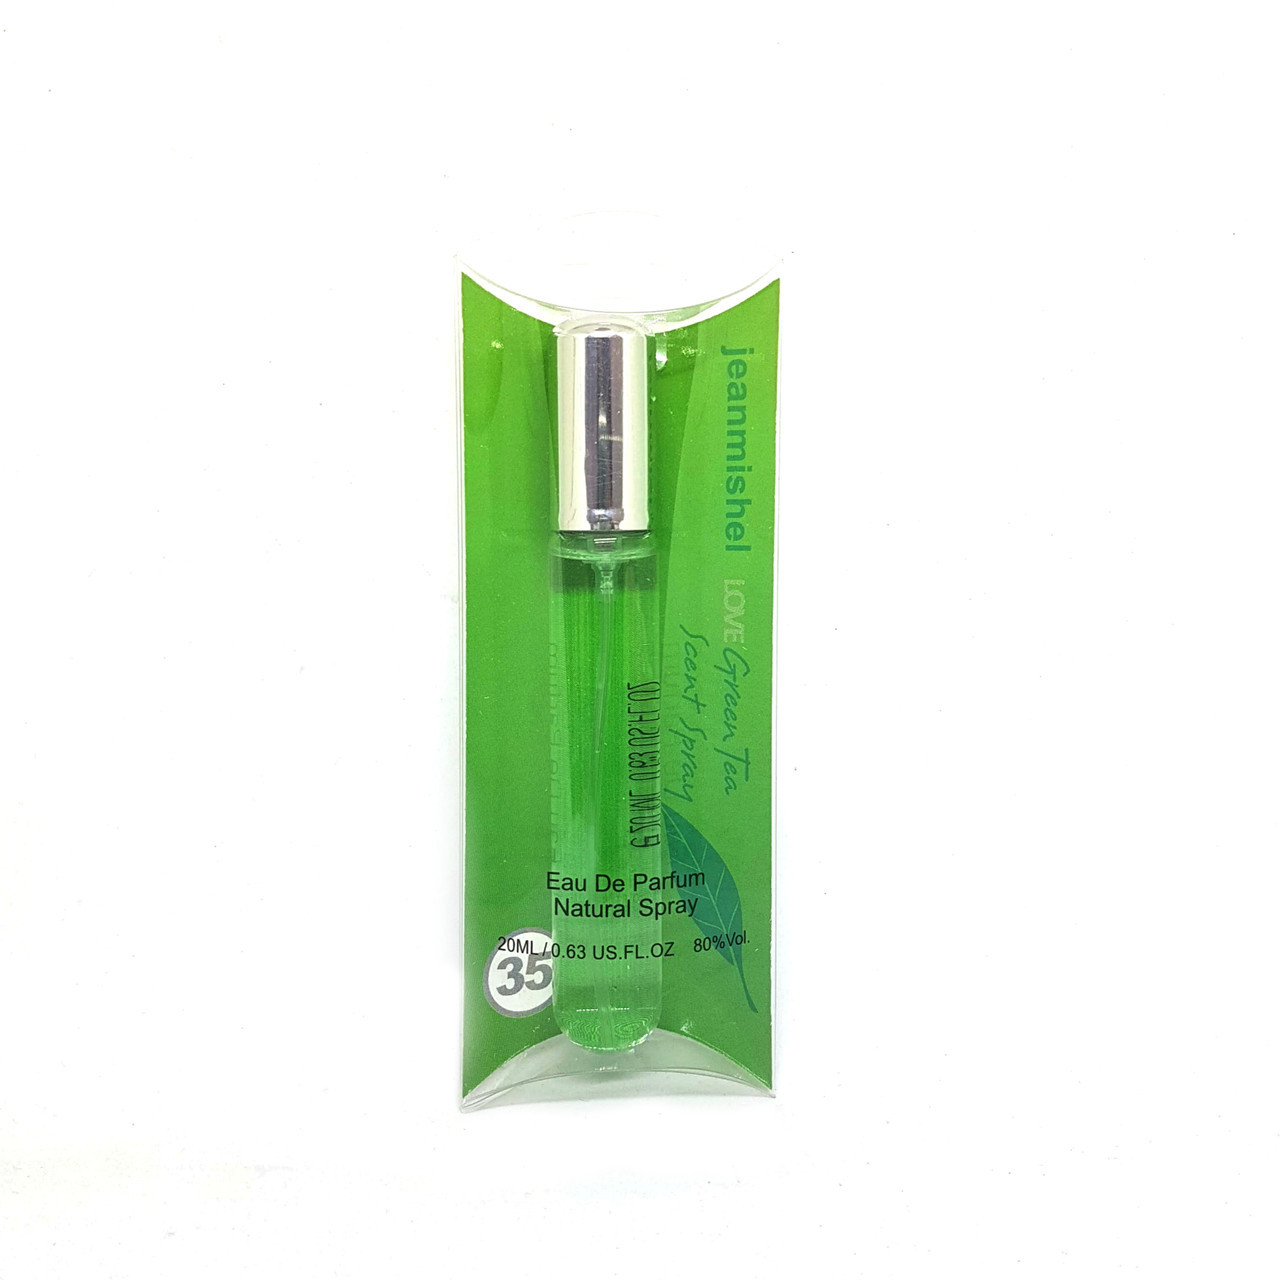 Jeanmishel Love Green Tea Scent Spray (35) 20ml